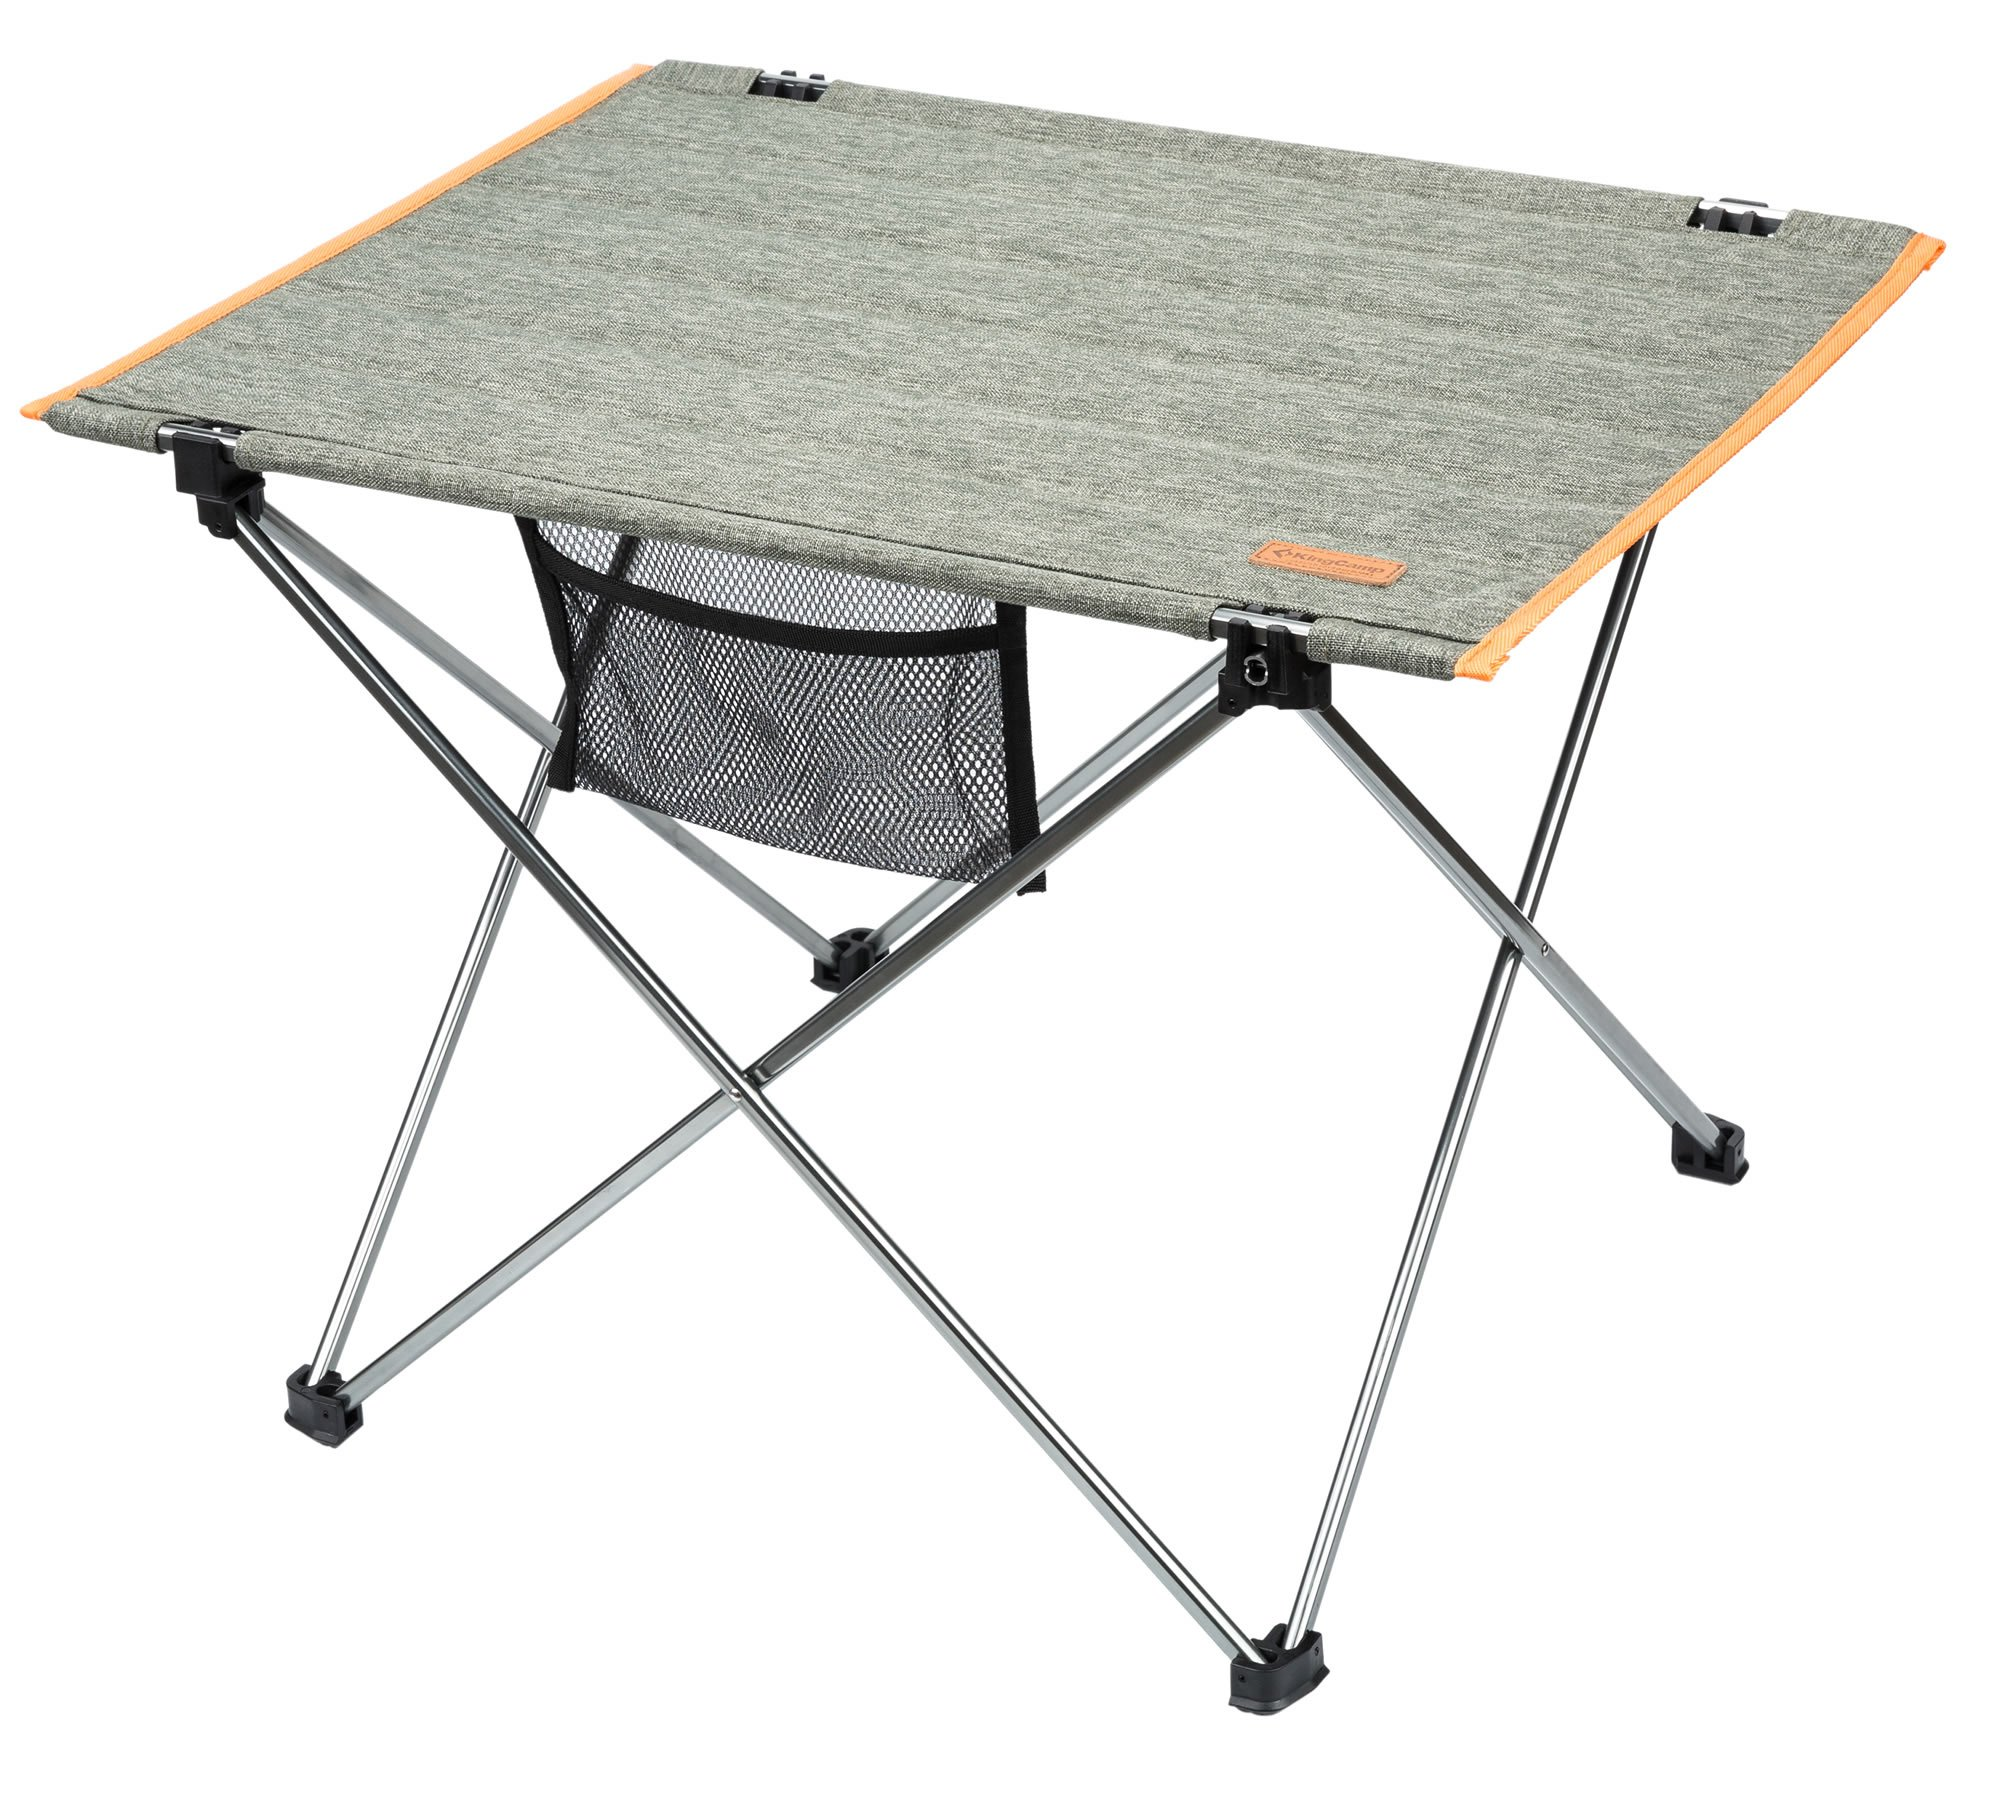 KingCamp Ultra-Lightweight Portable Aluminum Oxford Folding Roll Up Table for Picnic, Camping, Barbecue and Backyard Party, 22 × 16.7 × 15.7 inches, 2.4 lbs